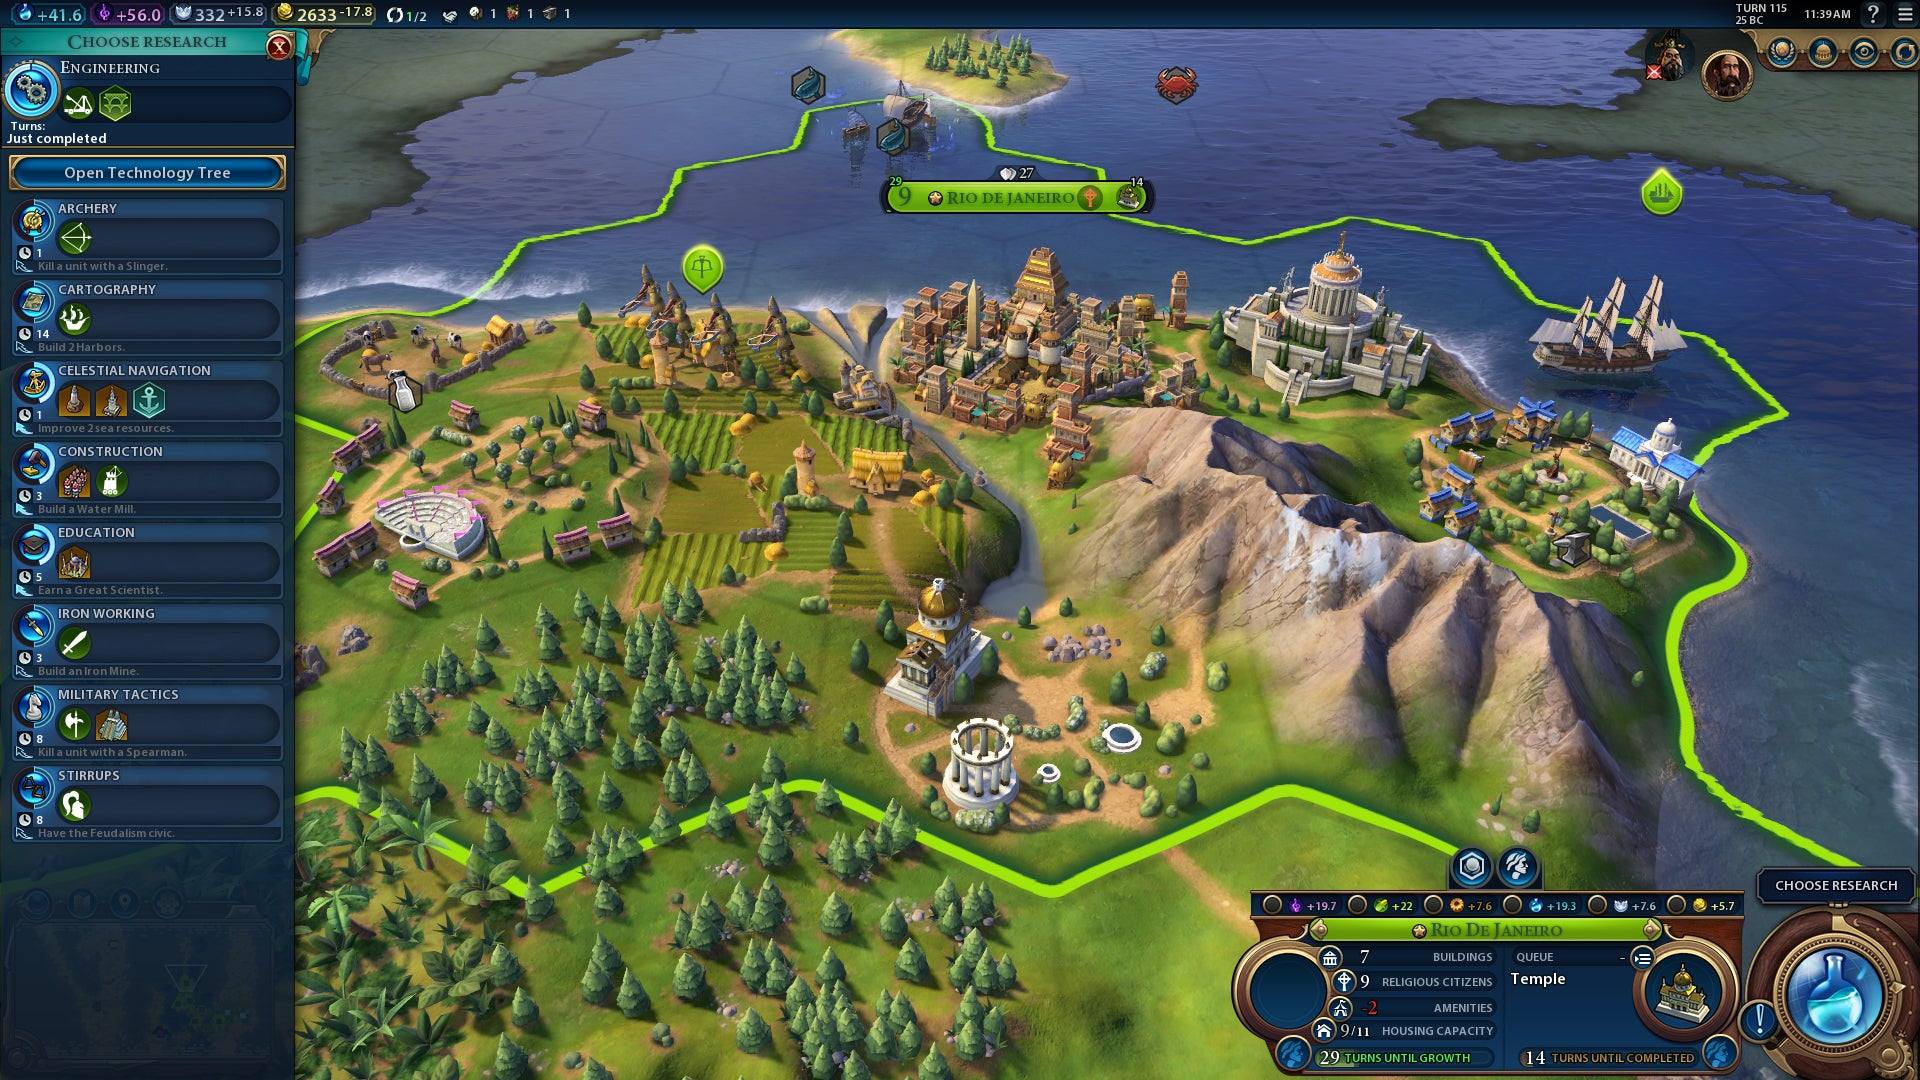 150 turns with Civilization VI: Active Research and civics